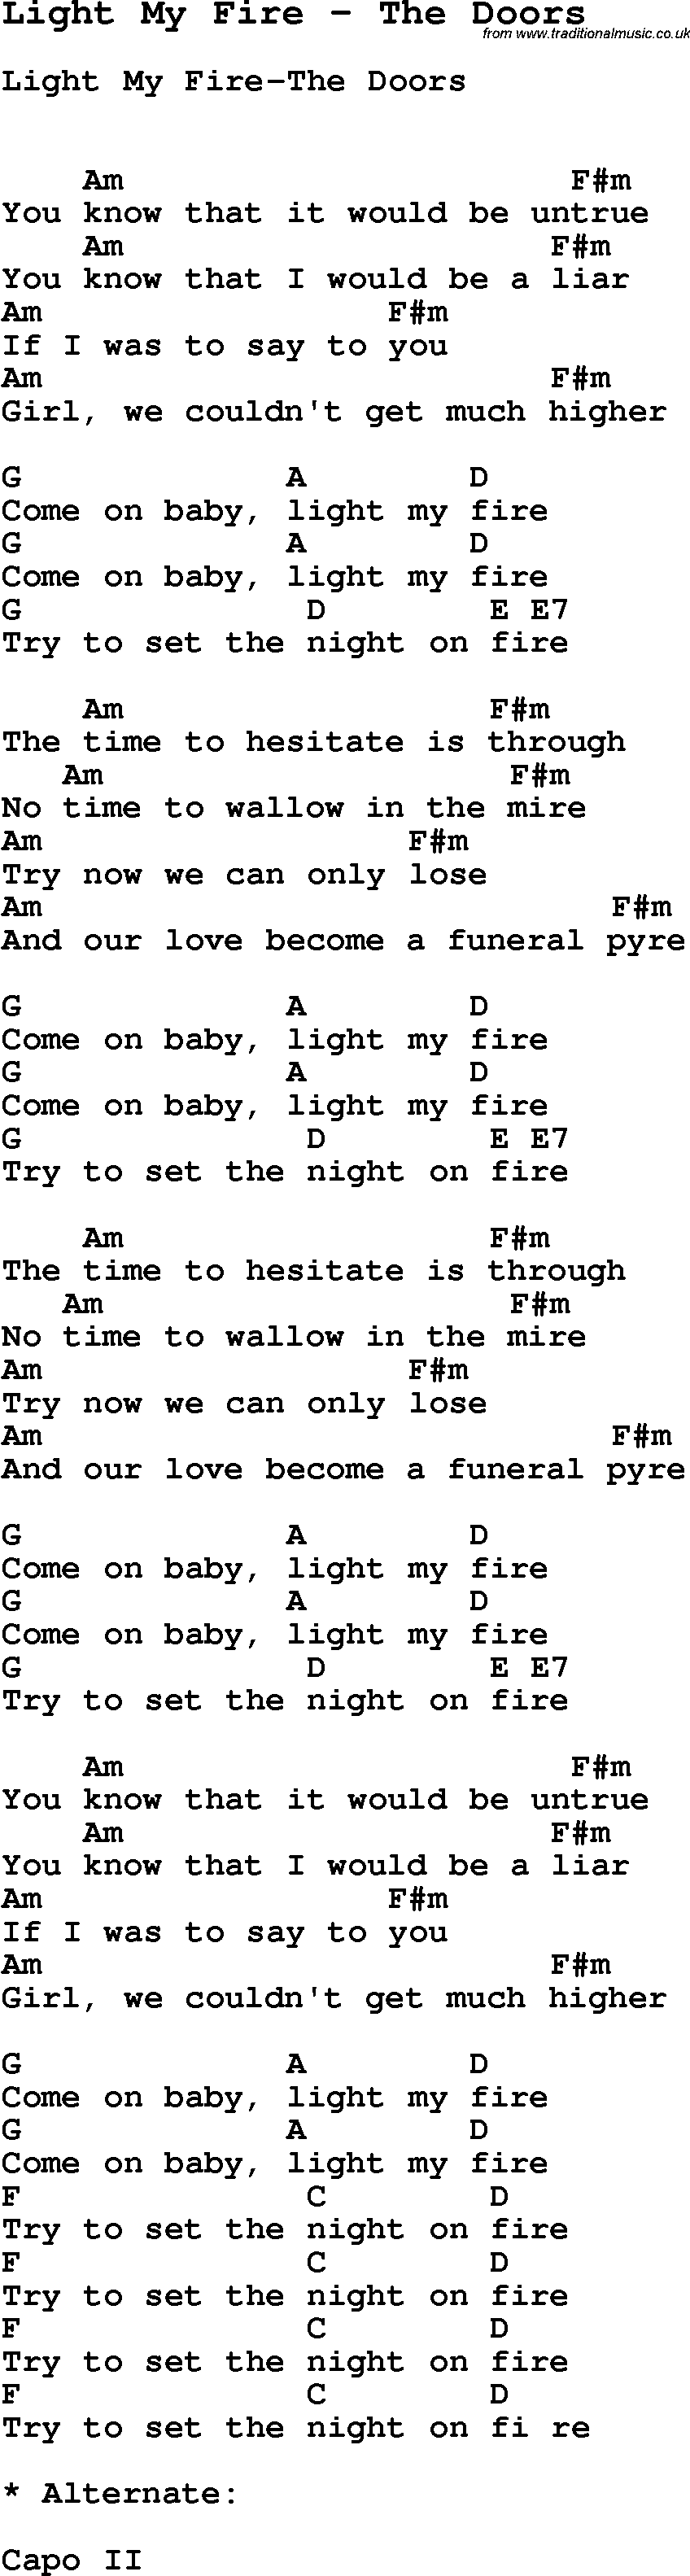 Song Light My Fire by The Doors with lyrics for vocal performance and accompaniment chords  sc 1 st  Traditional Music Library & Song Light My Fire by The Doors song lyric for vocal performance ...